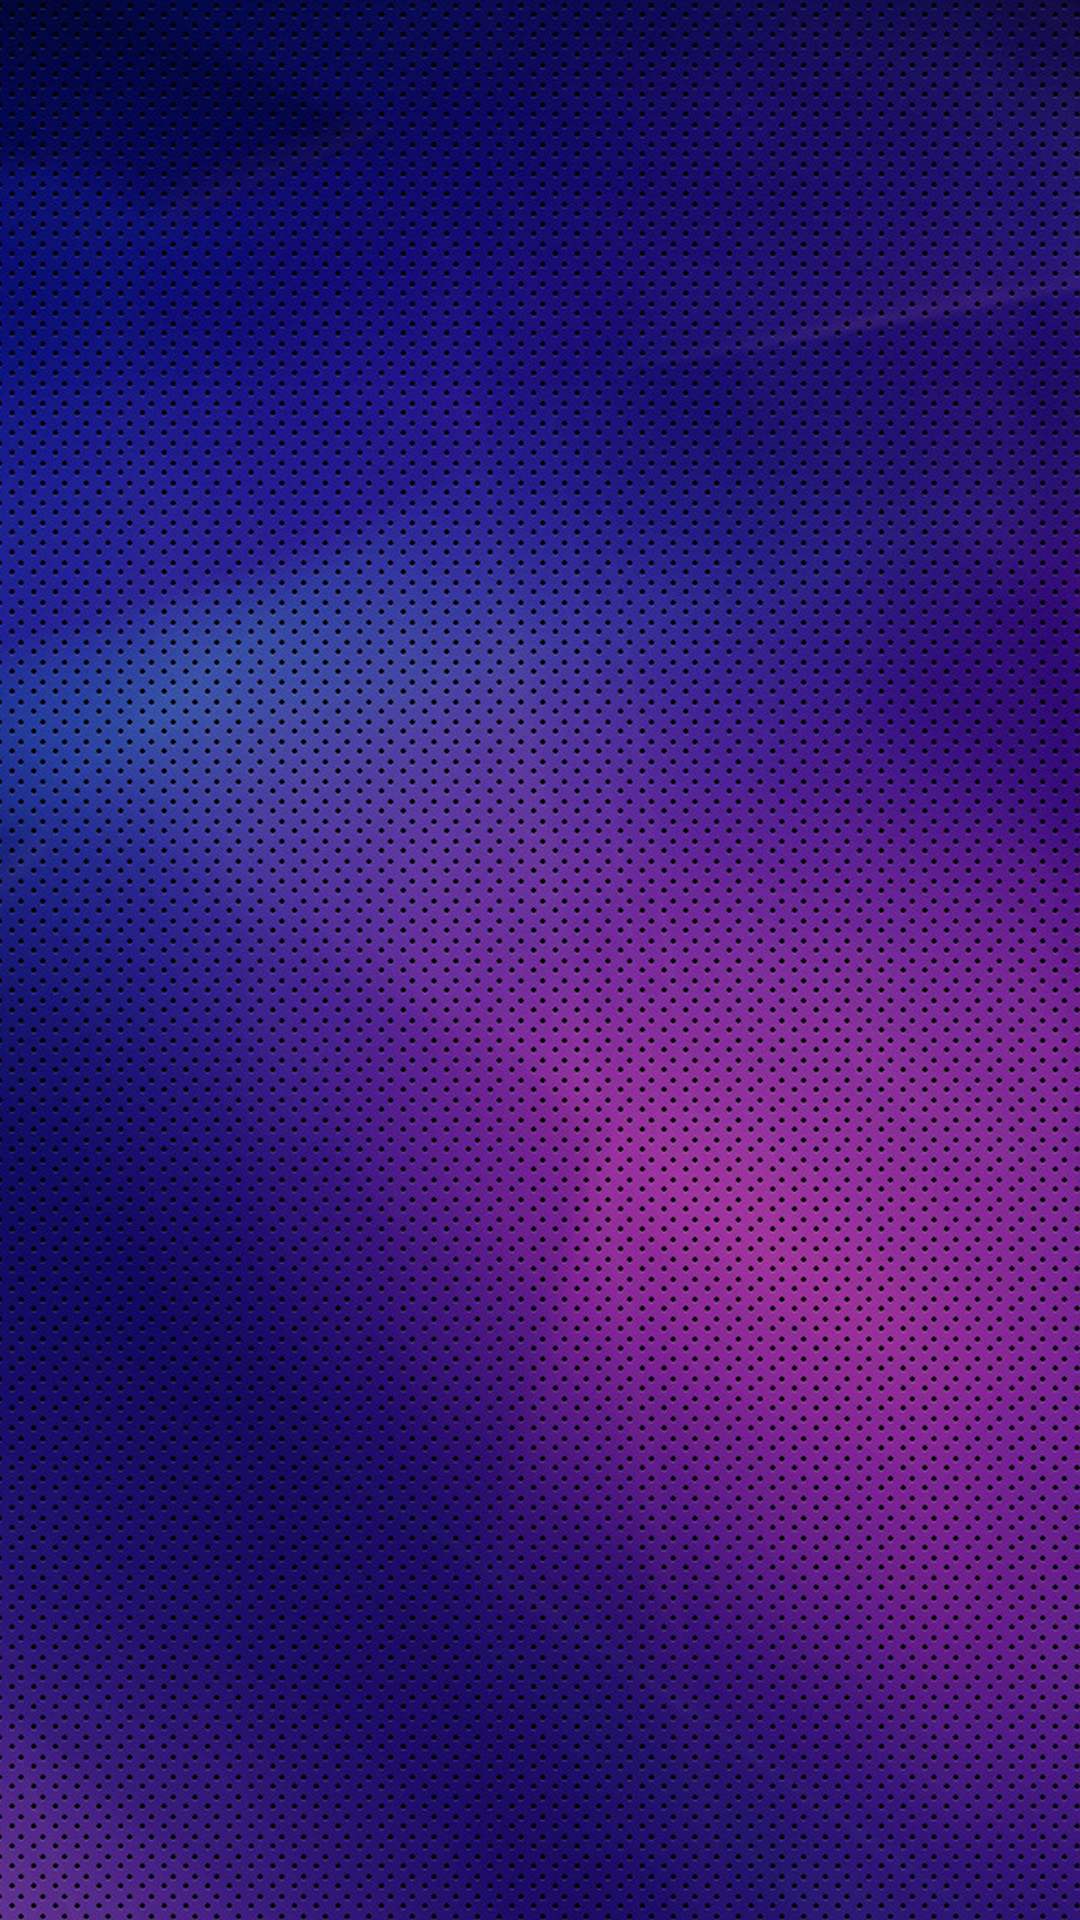 got a new iphone  here are 40 stunning wallpapers for it